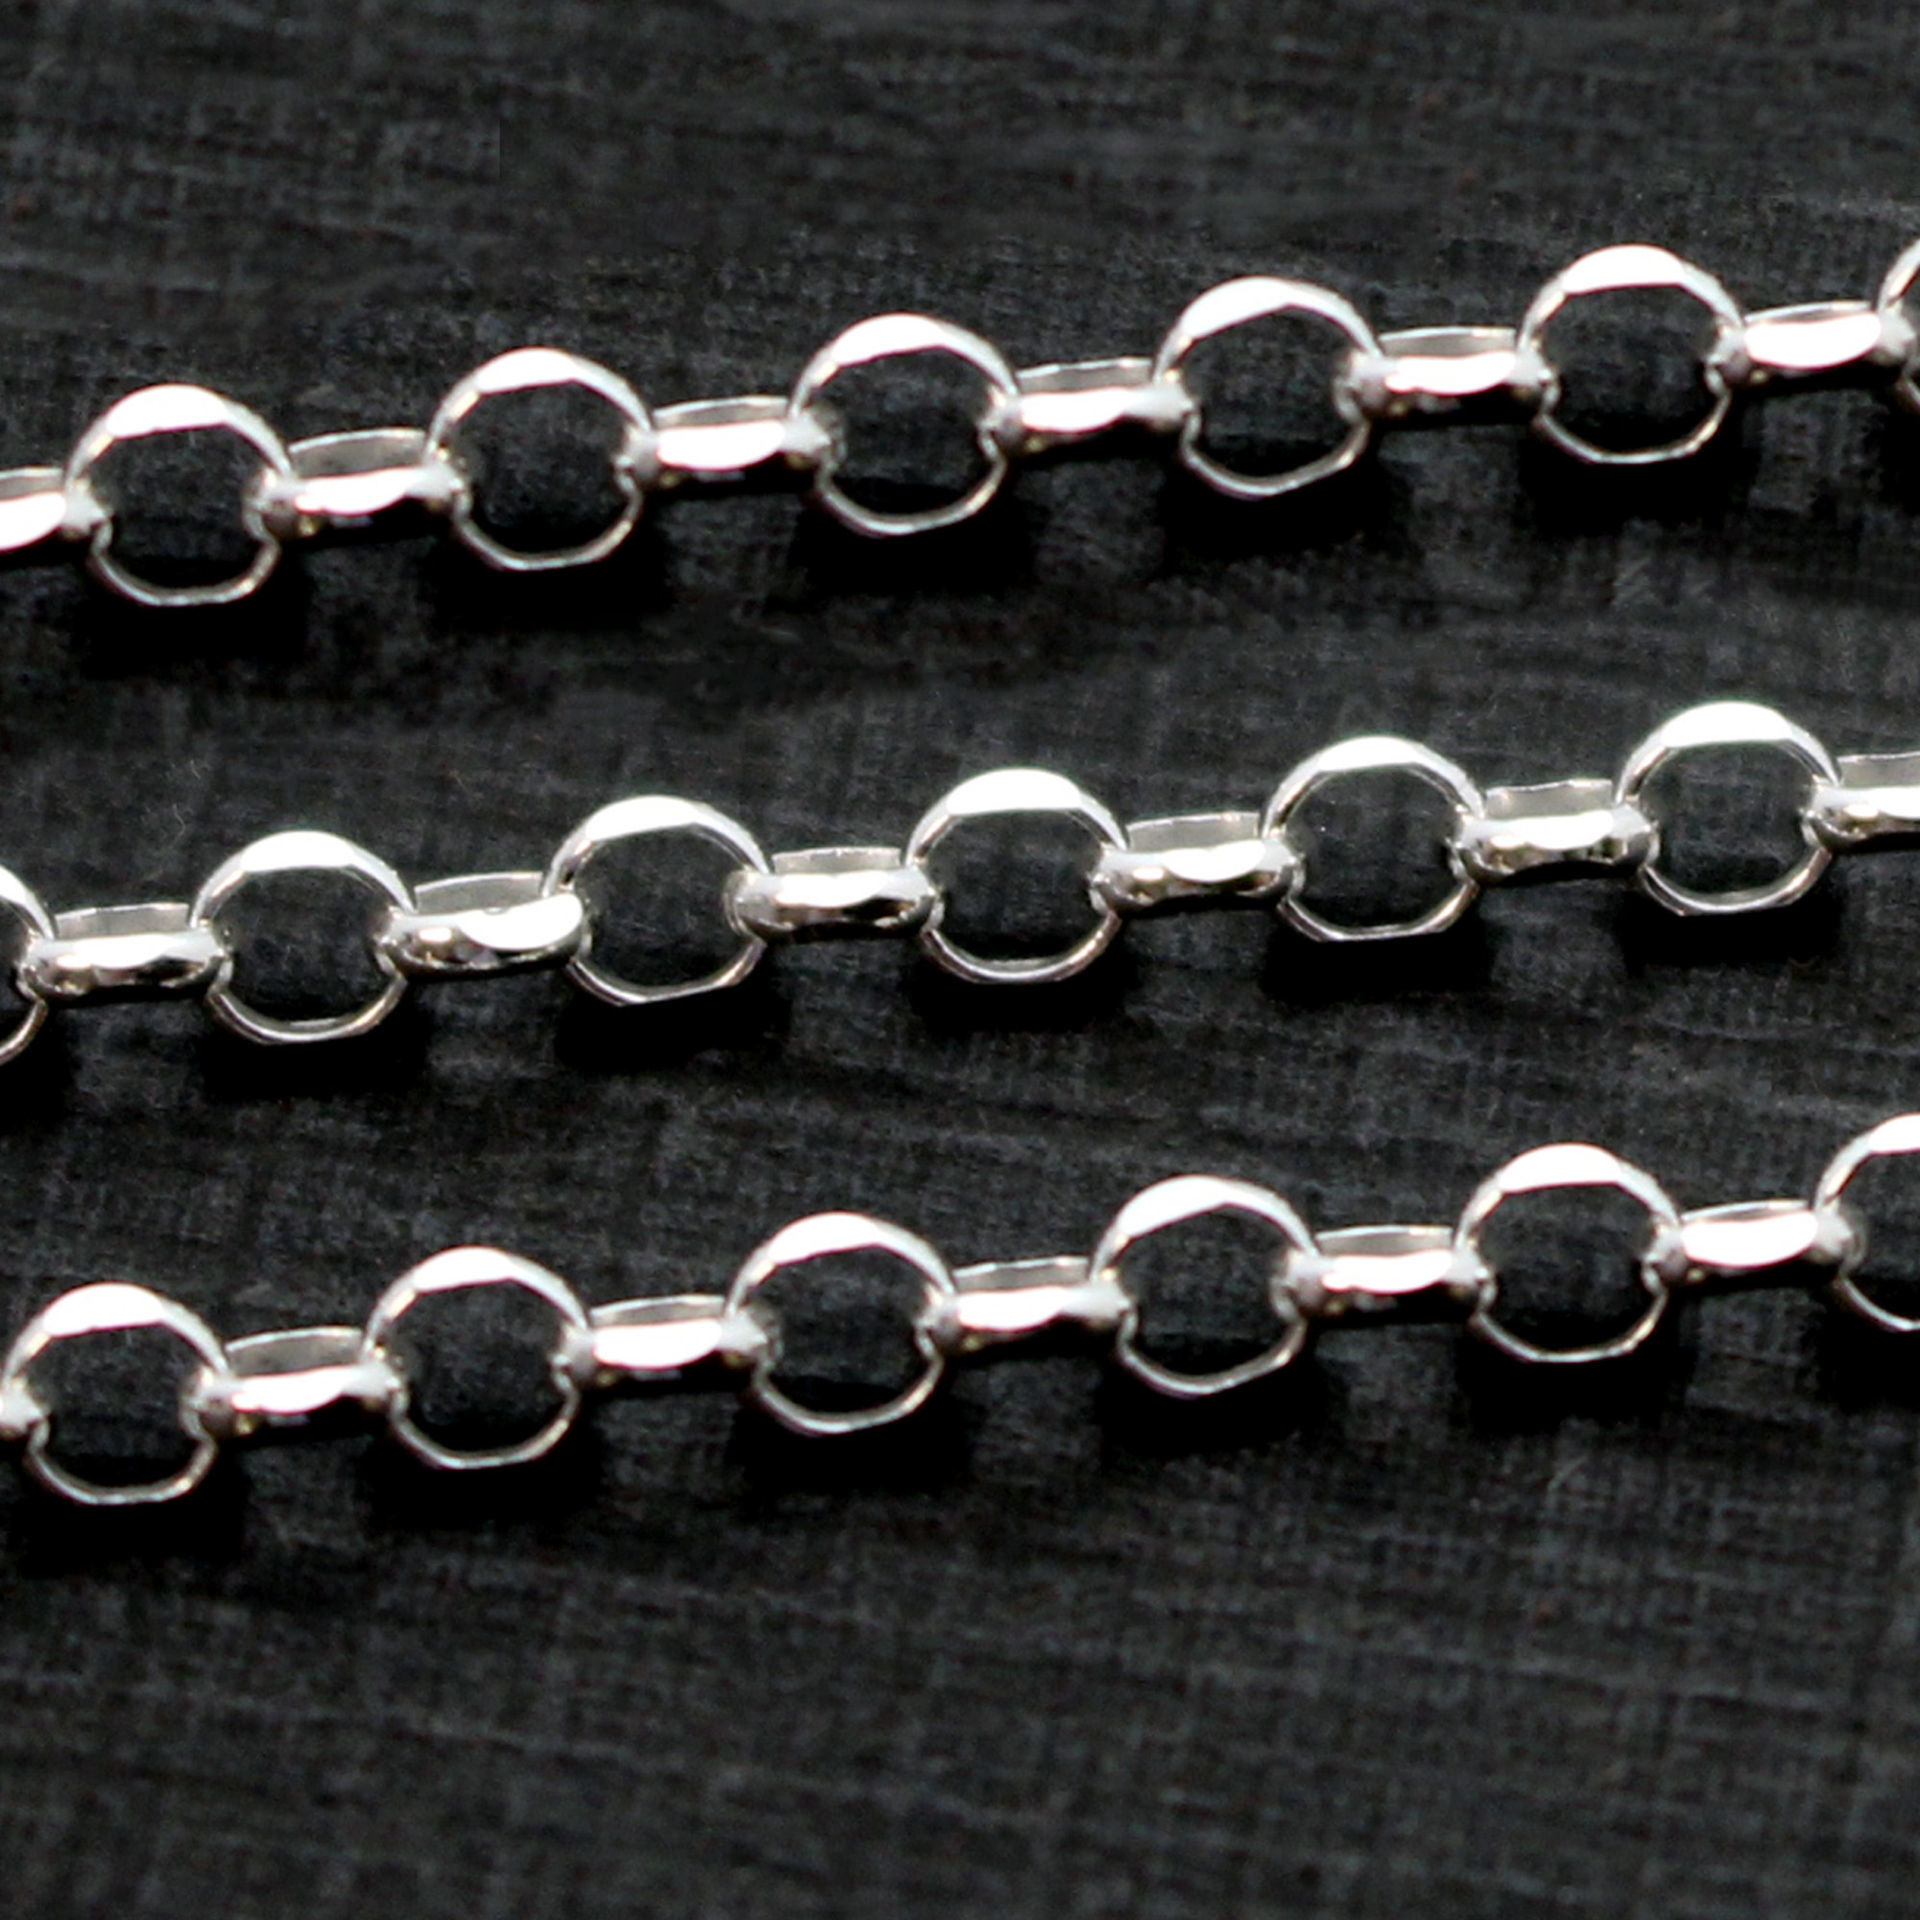 Sterling Silver Chain-3.2mm Diamond Cut Rolo Chain - Unifinished Bulk Chain (sold per foot)